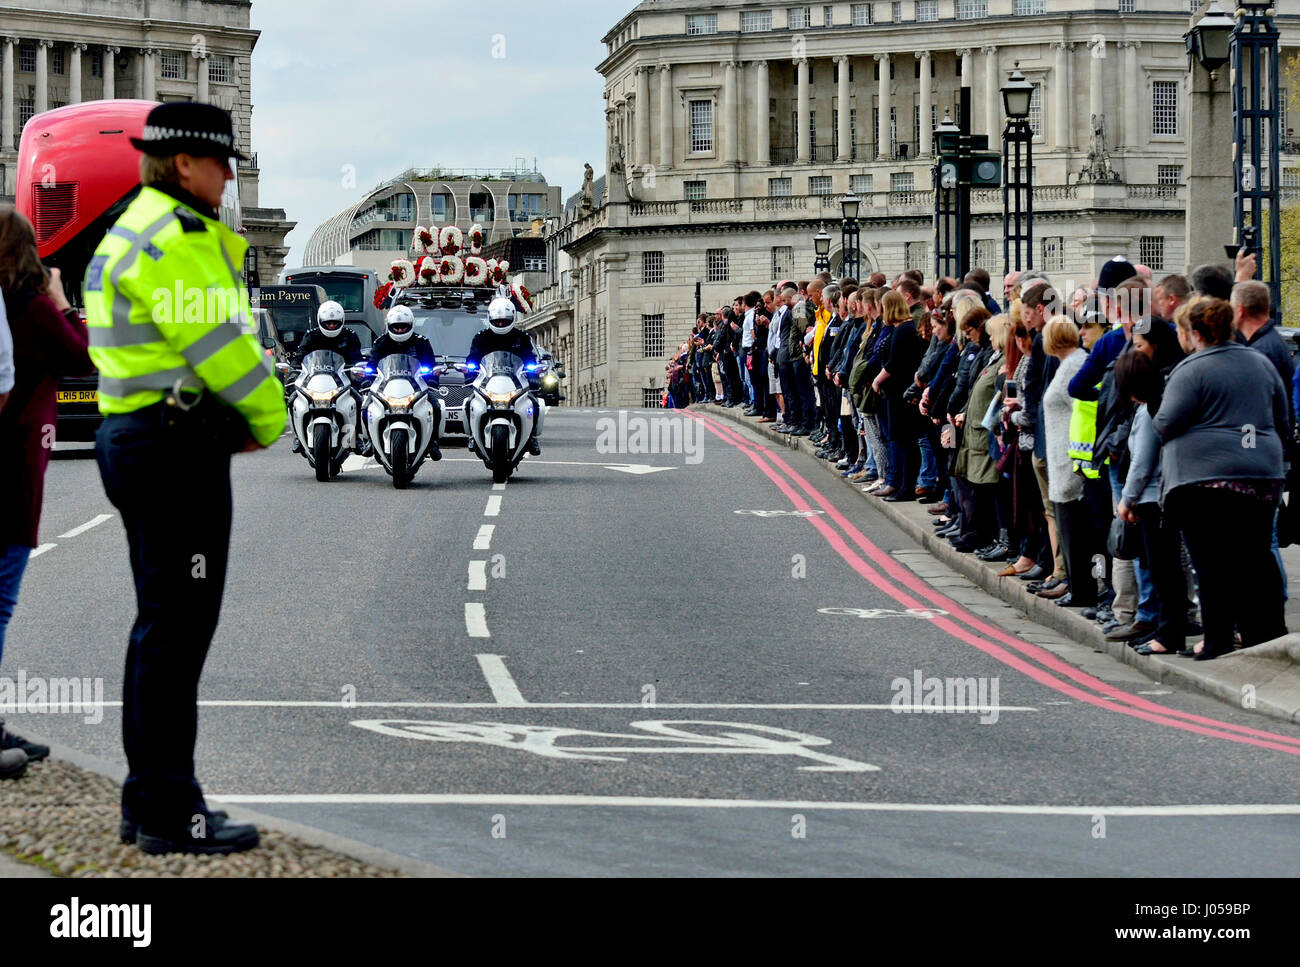 London, UK. 10th Apr, 2017. A police officer bows her head as the funeral cortege of PC Keith Palmer passes over - Stock Image